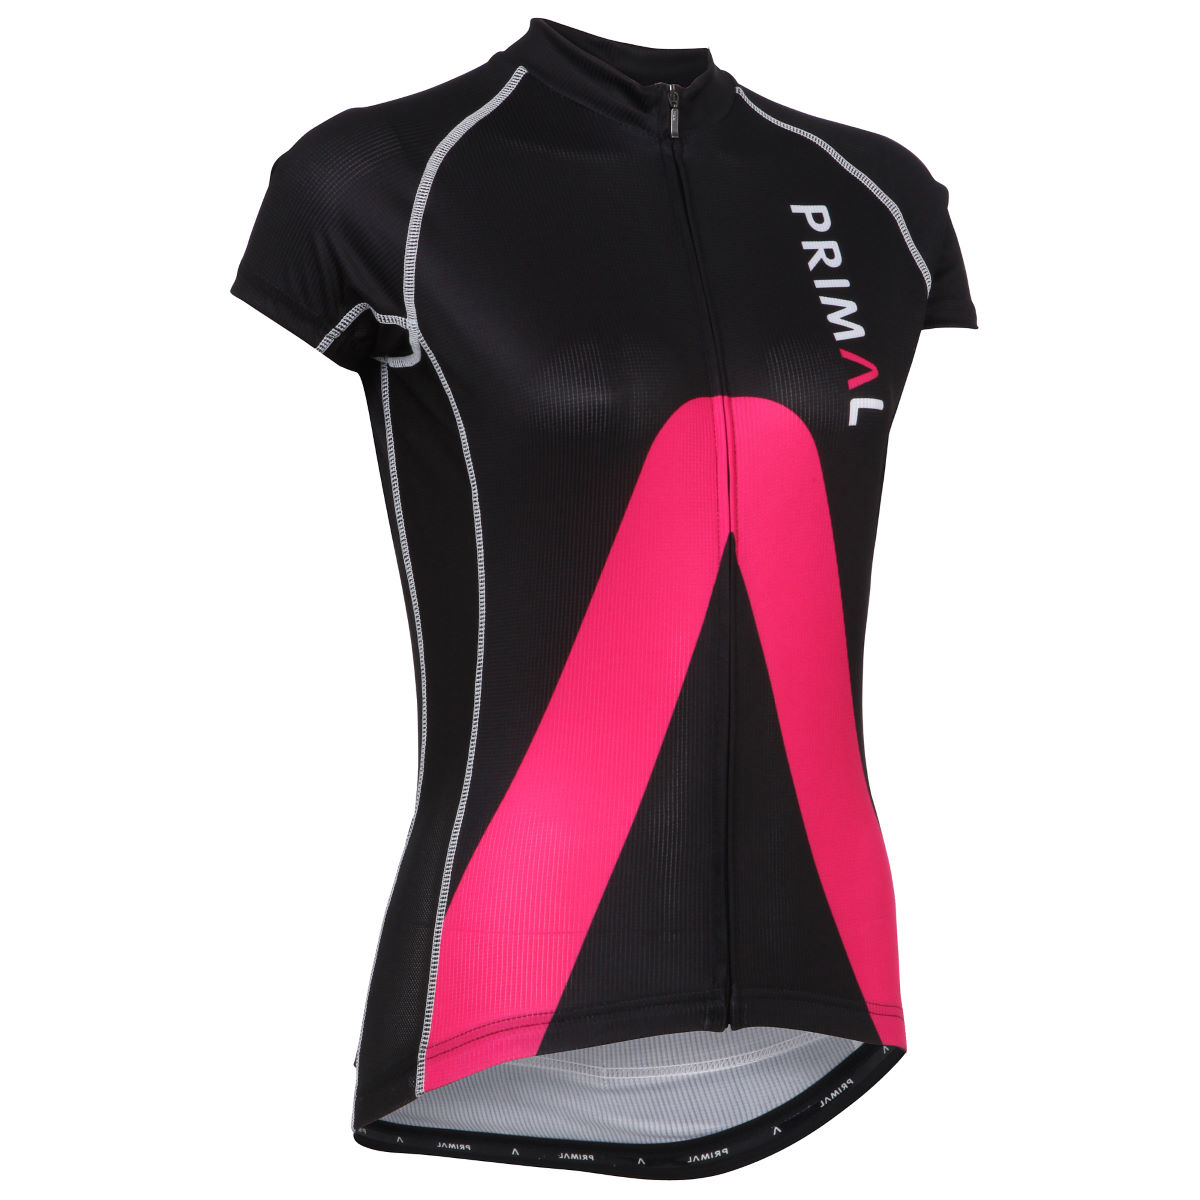 Primal Women's Aro Evo Short Sleeve Jersey - Small Black/Pink